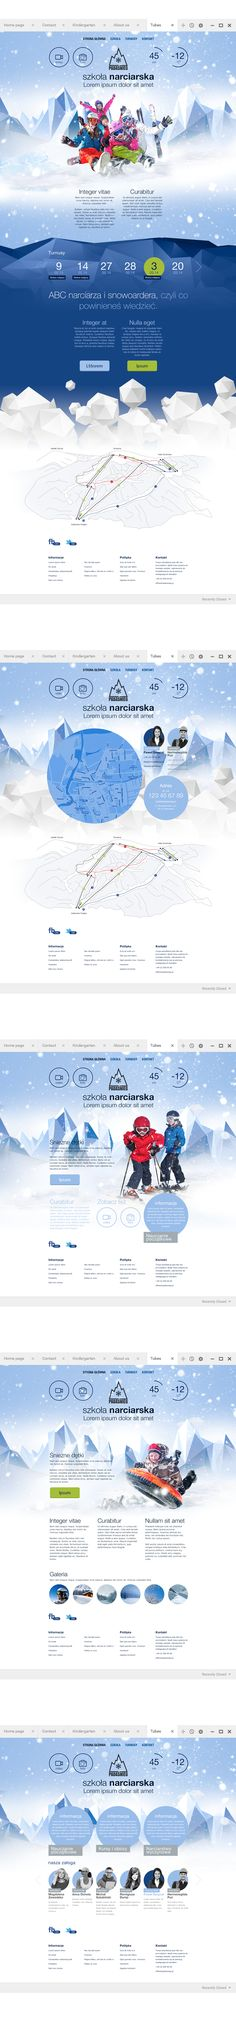 padasnieg by Michal Galubinski, via Behance